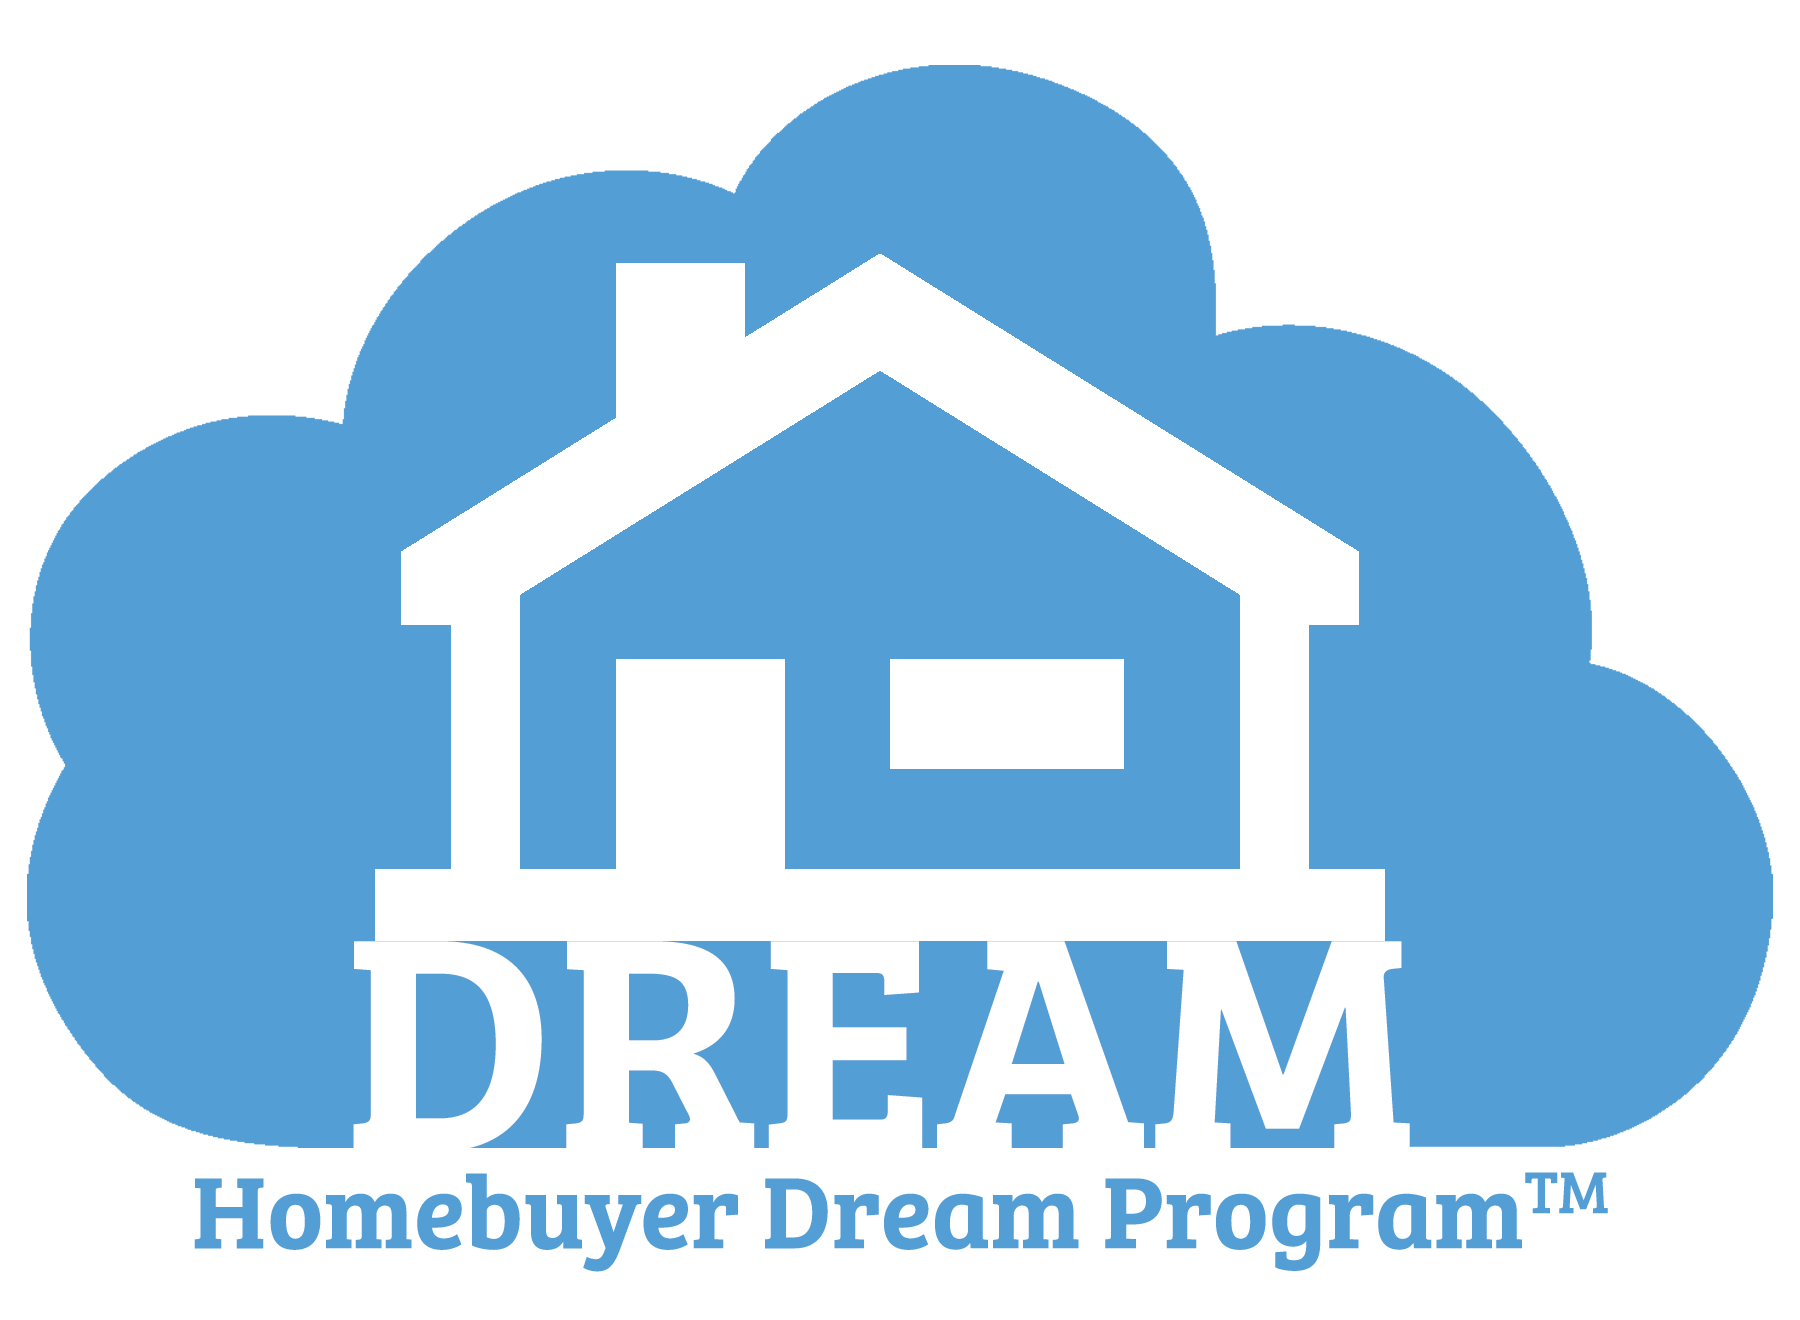 Homebuyer Dream Program logo